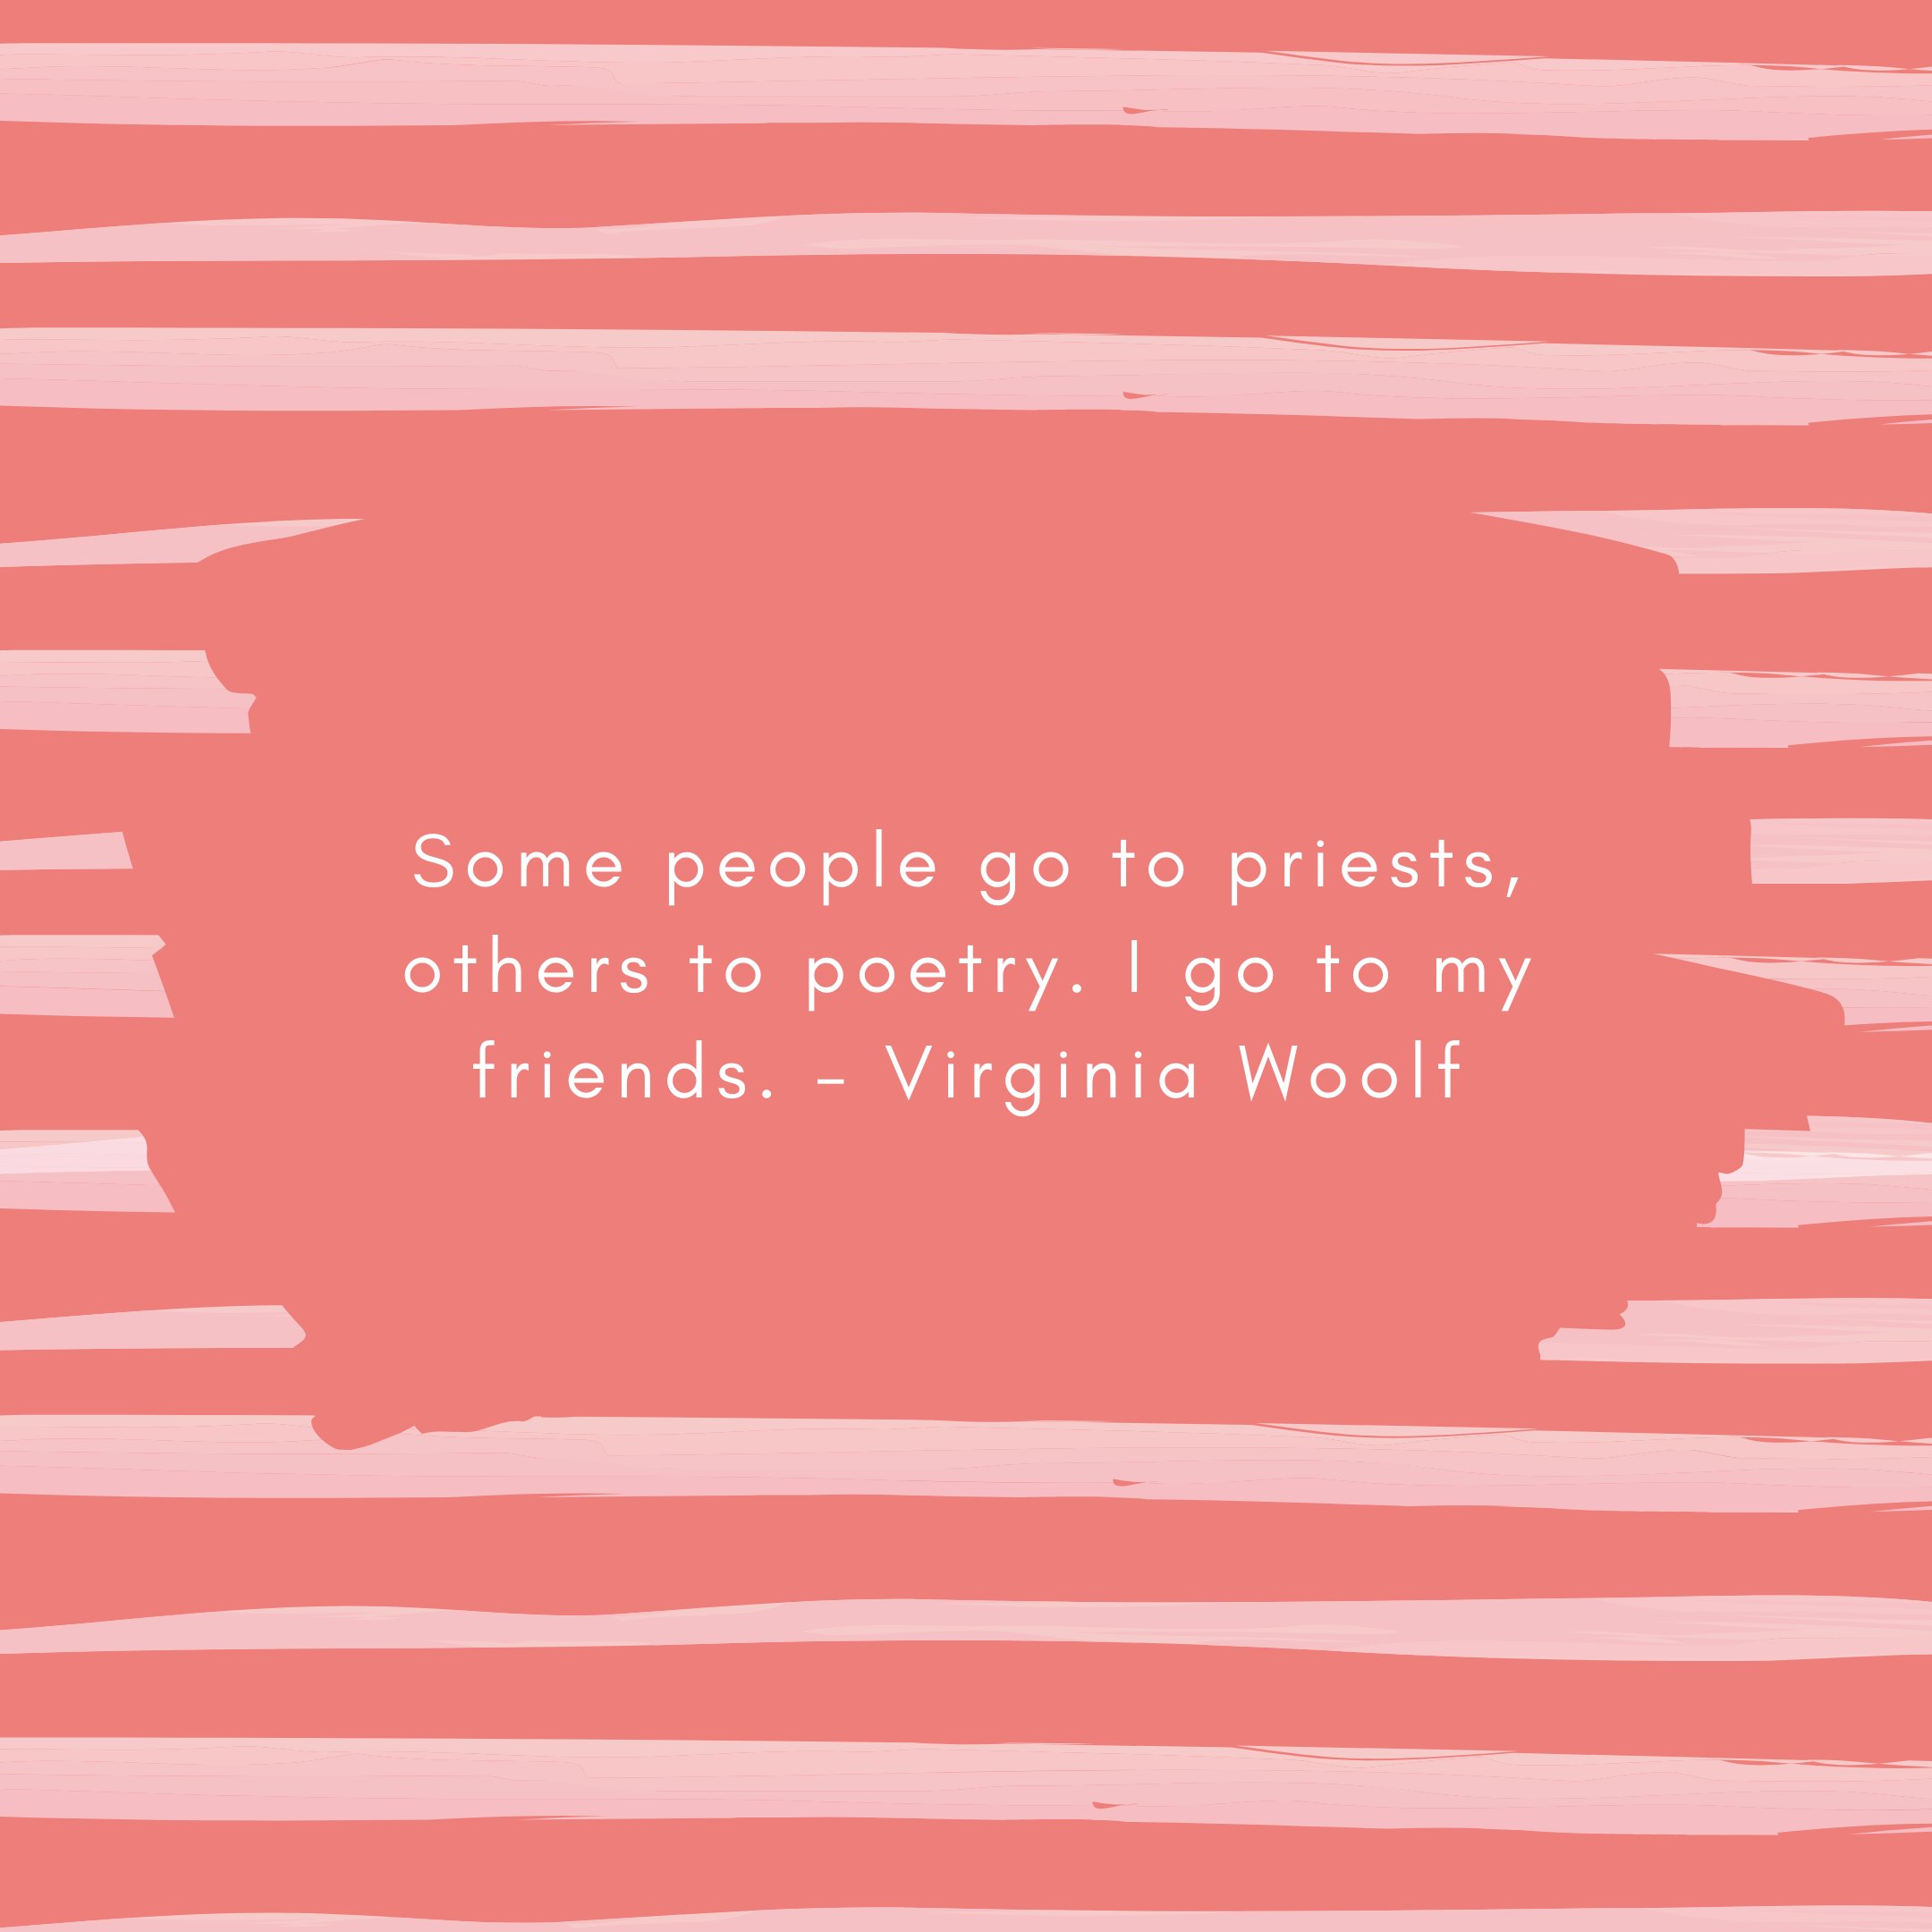 Some people go to priests, others to poetry. I go to my friends. – Virginia Woolf